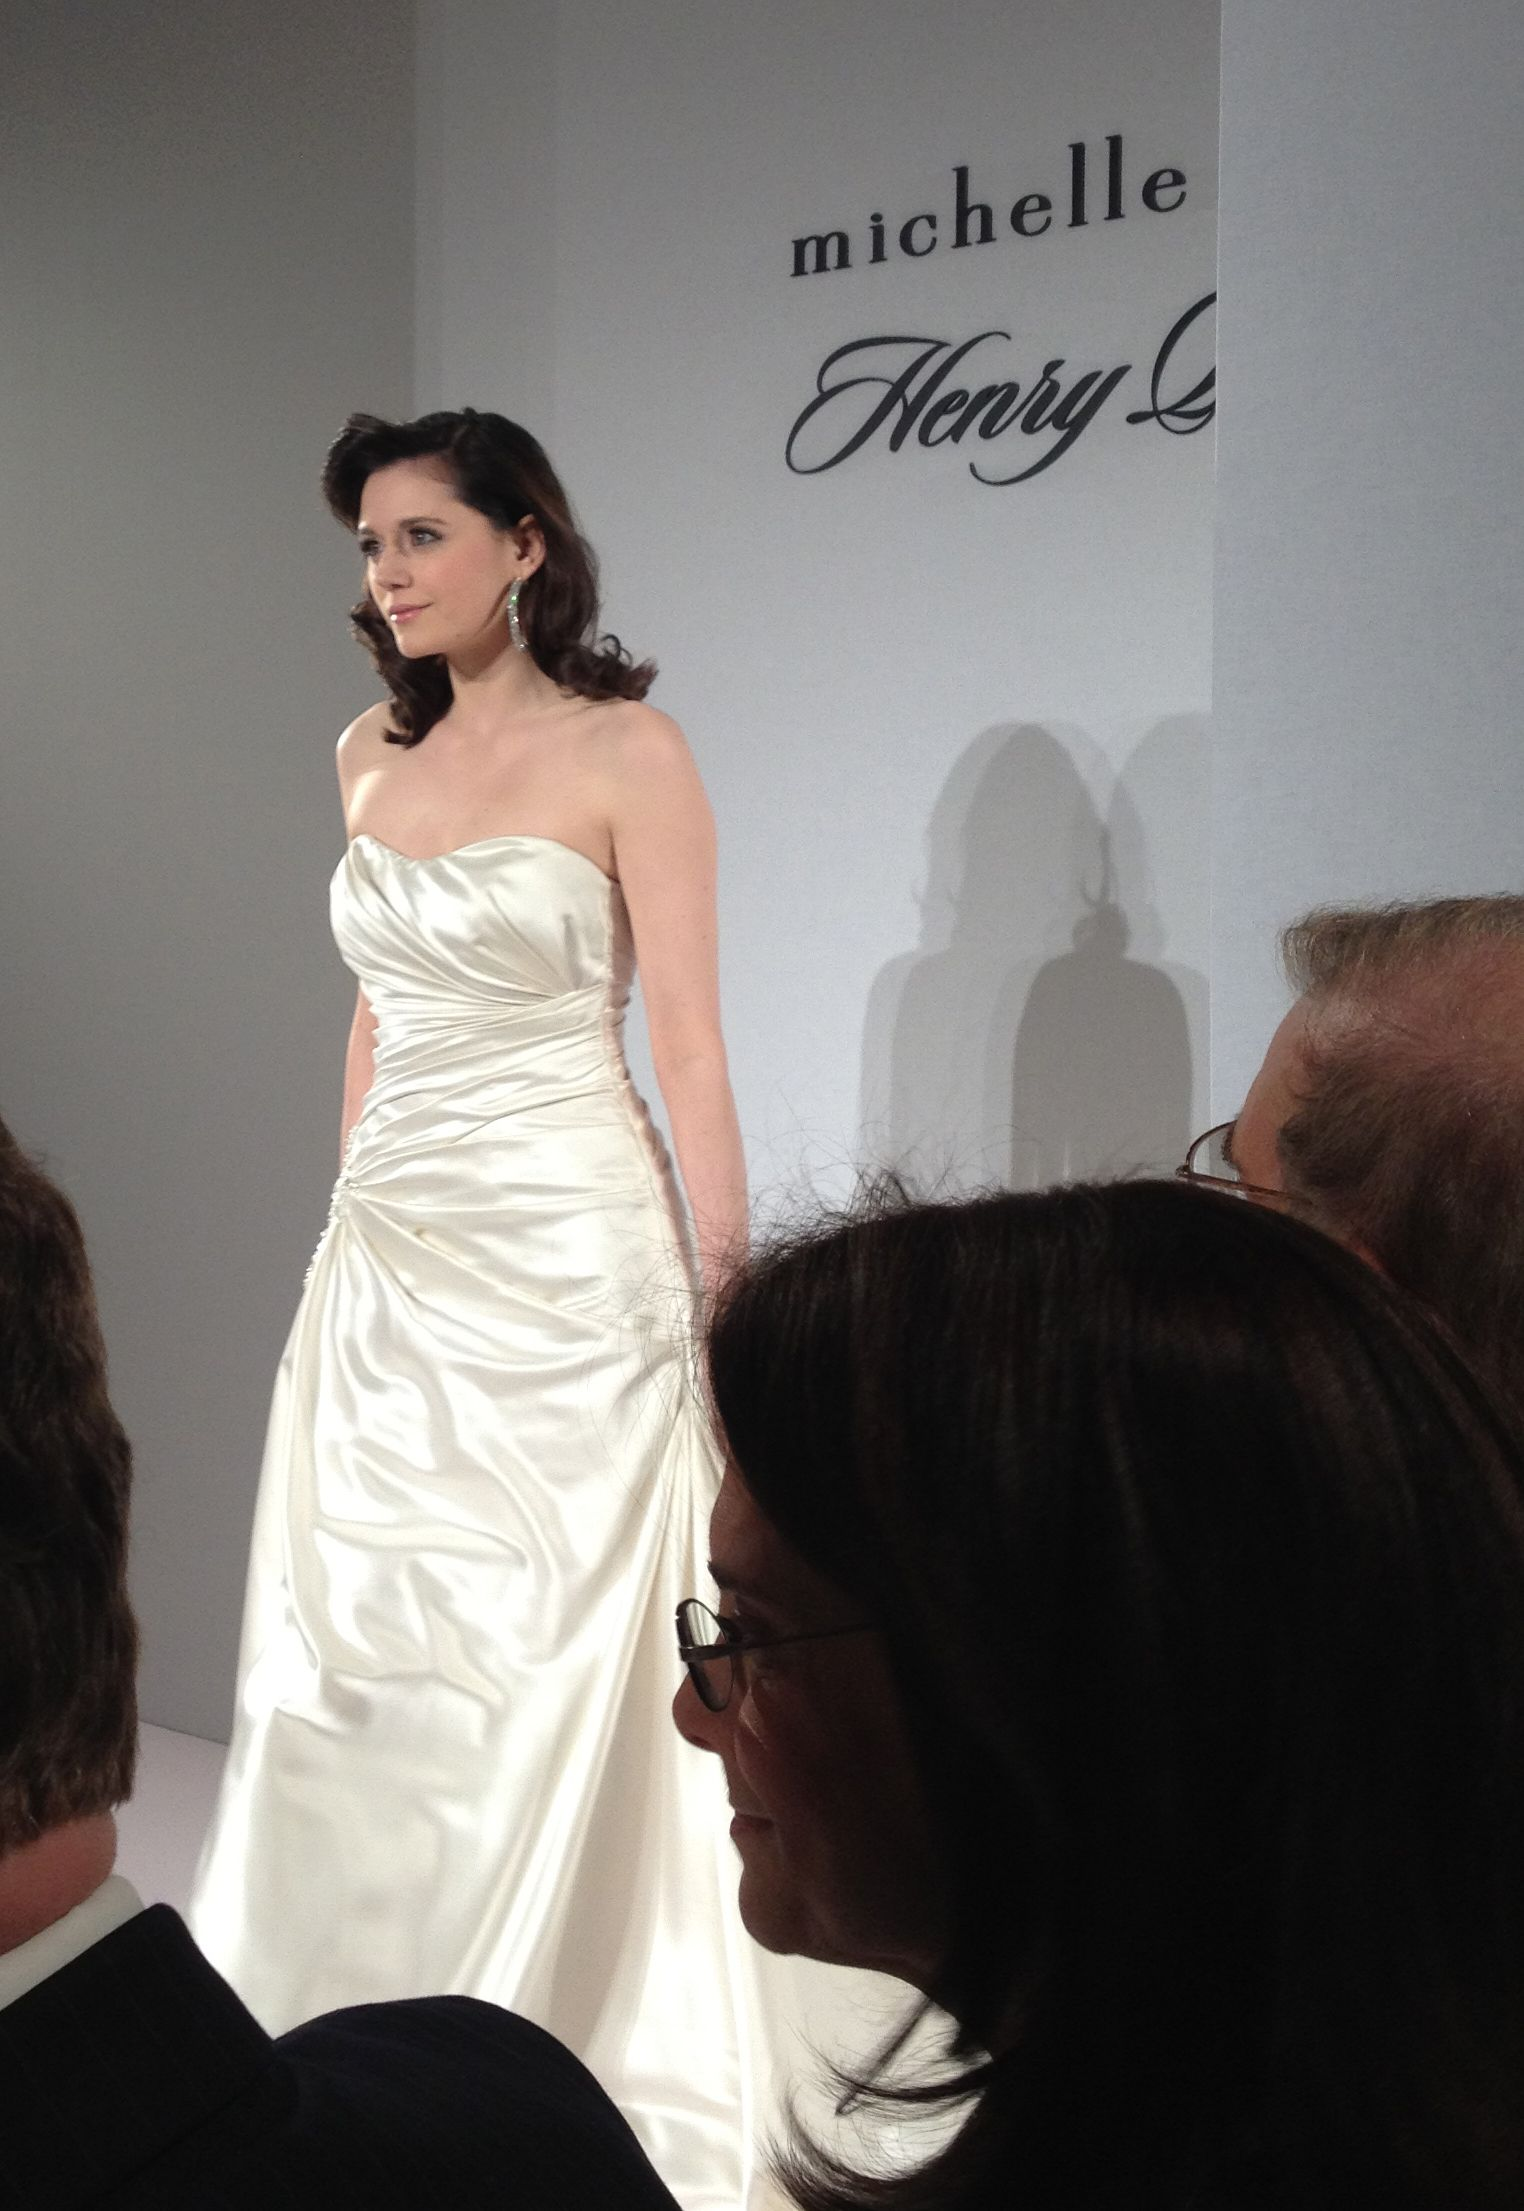 Here is a snap at a Kleinfeld private showing of Michelle Roth and Henry Roth designs. #Gorgeous #kleinfeld #runway #bridal #MichelleRoth #HenryRoth #weddinggowns